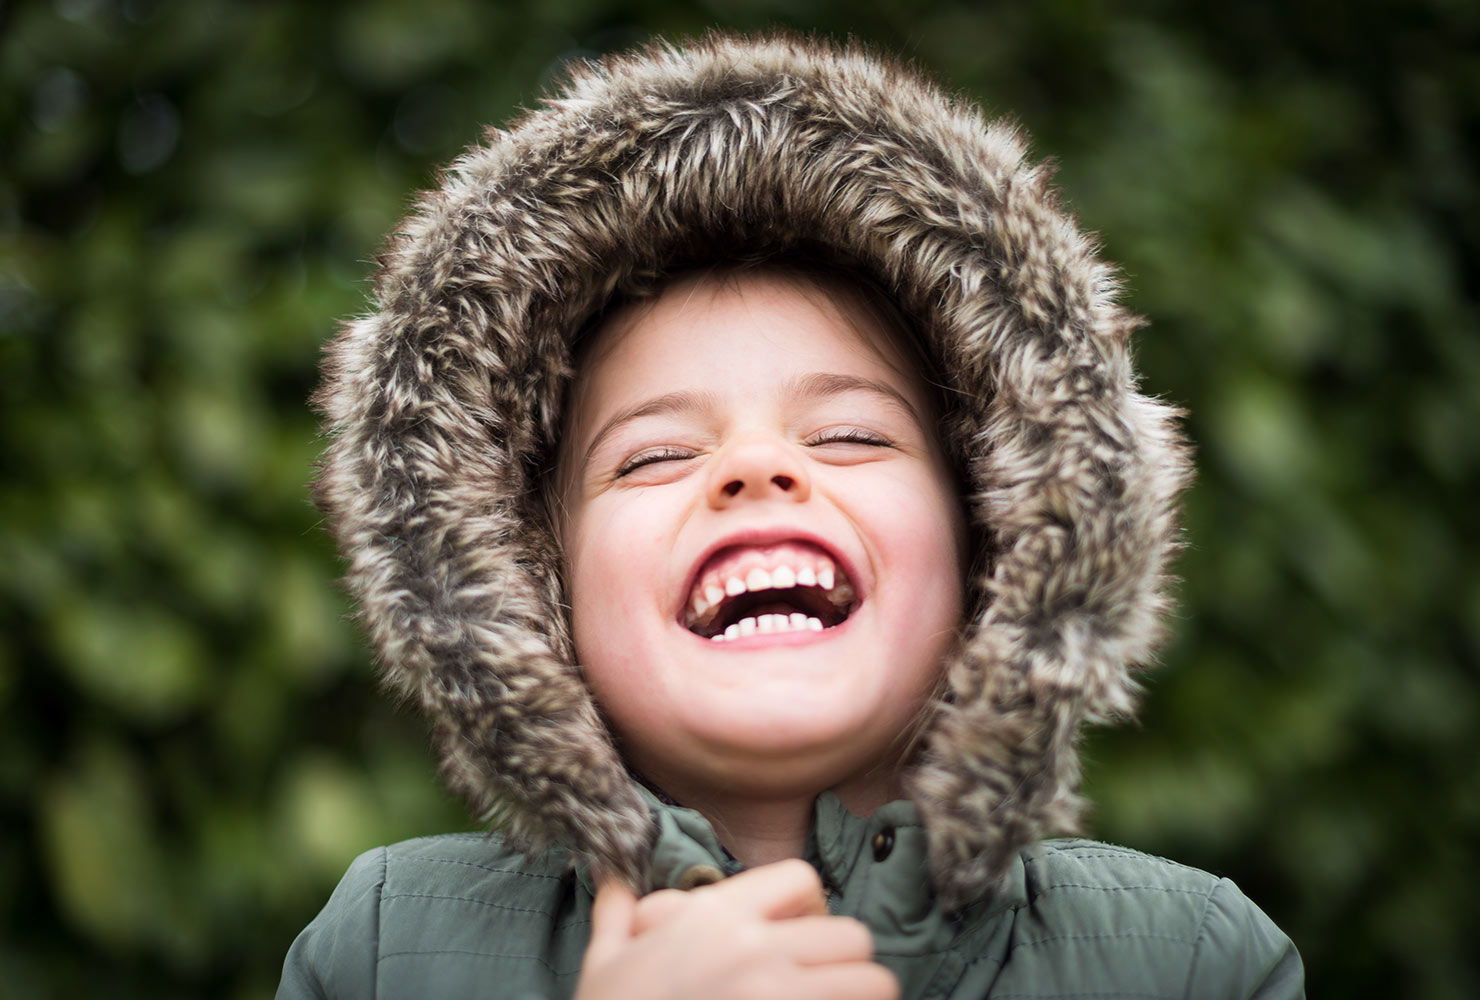 young child laughing wearing fuzzy jacket hood